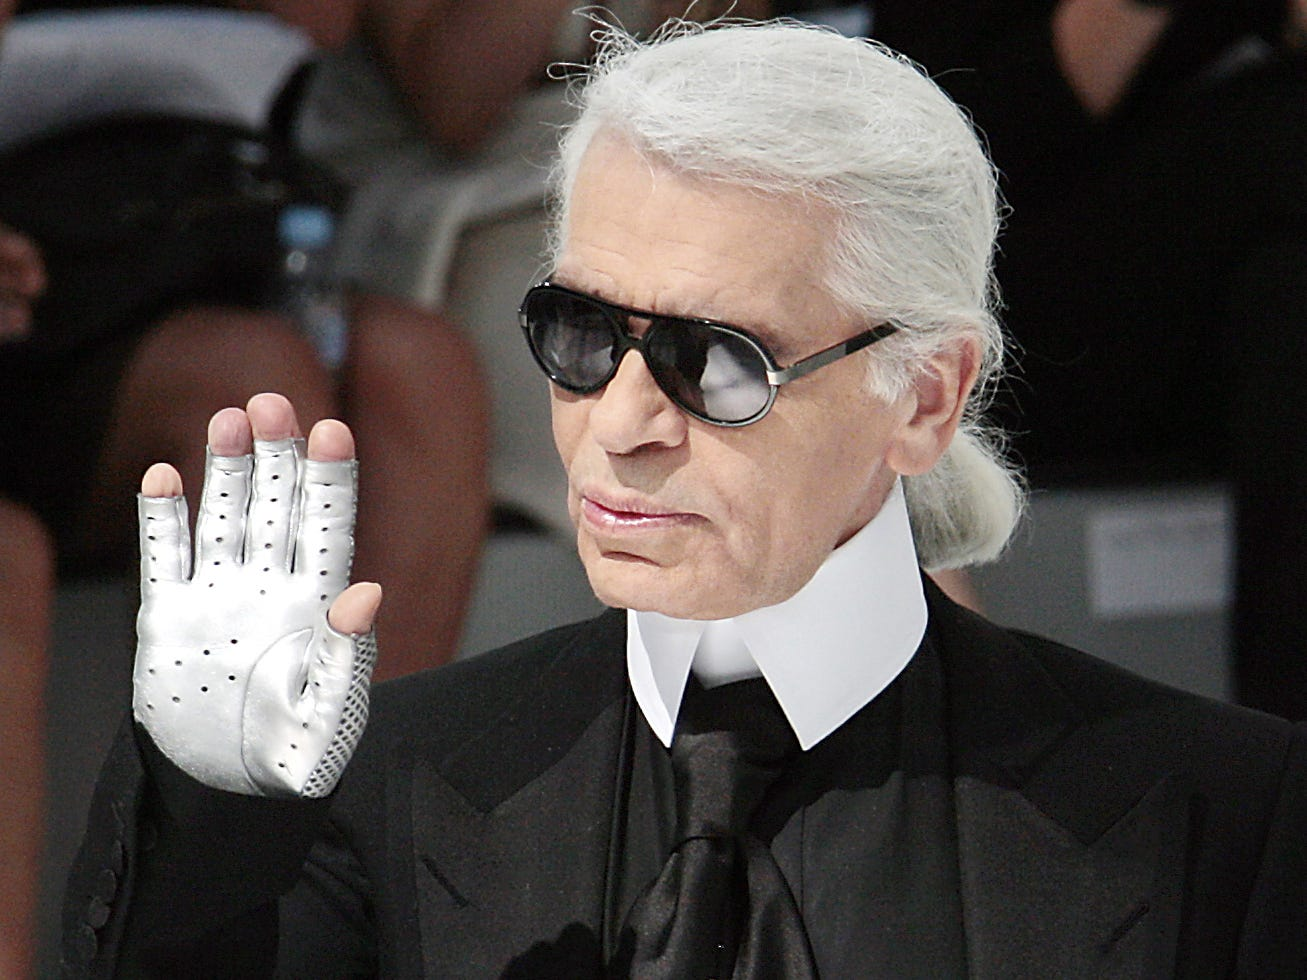 German designer Karl Lagerfeld acknowledges the public at the end Chanel Fall-Winter 2009 Haute Couture collection show in Paris on July 1, 2008. AFP PHOTO FRANCOIS GUILLOT (Photo by FRANCOIS GUILLOT / AFP)FRANCOIS GUILLOT/AFP/Getty Images ORG XMIT: - ORIG FILE ID: AFP_1DL9W1